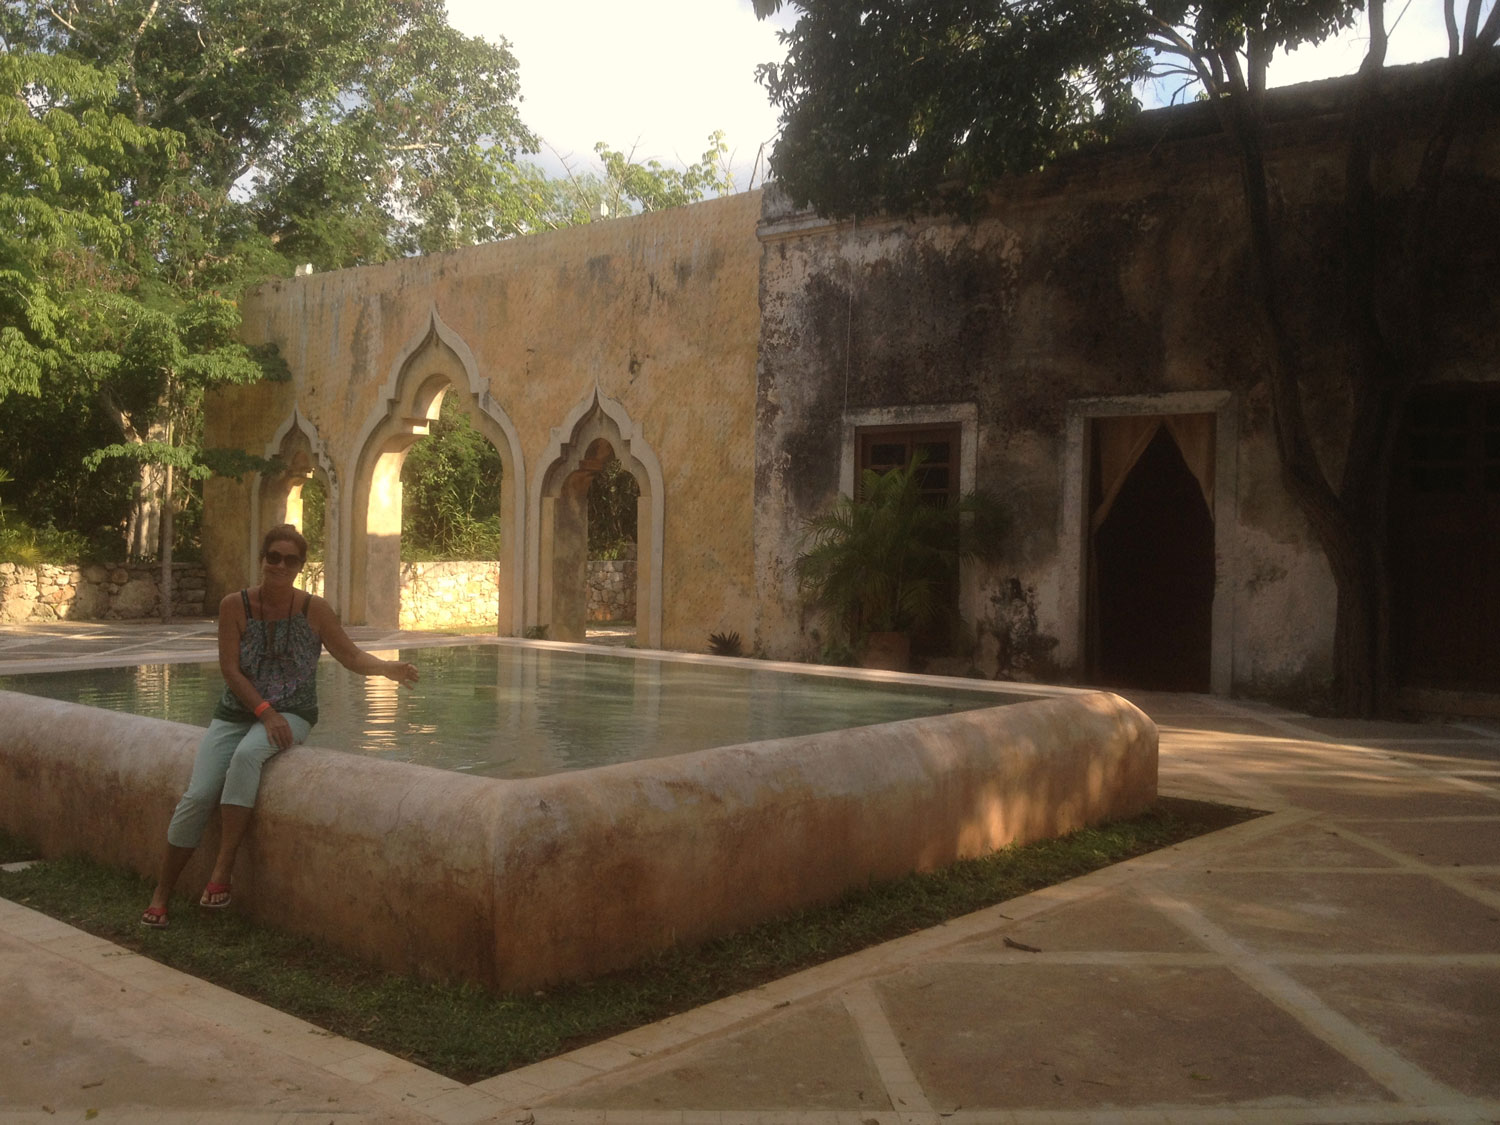 Hammocks_and_Ruins_Blog_Riviera_Maya_Mexico_Travel_Discover_Yucatan_What_to_do_Hacienda_Ochil_22.jpg